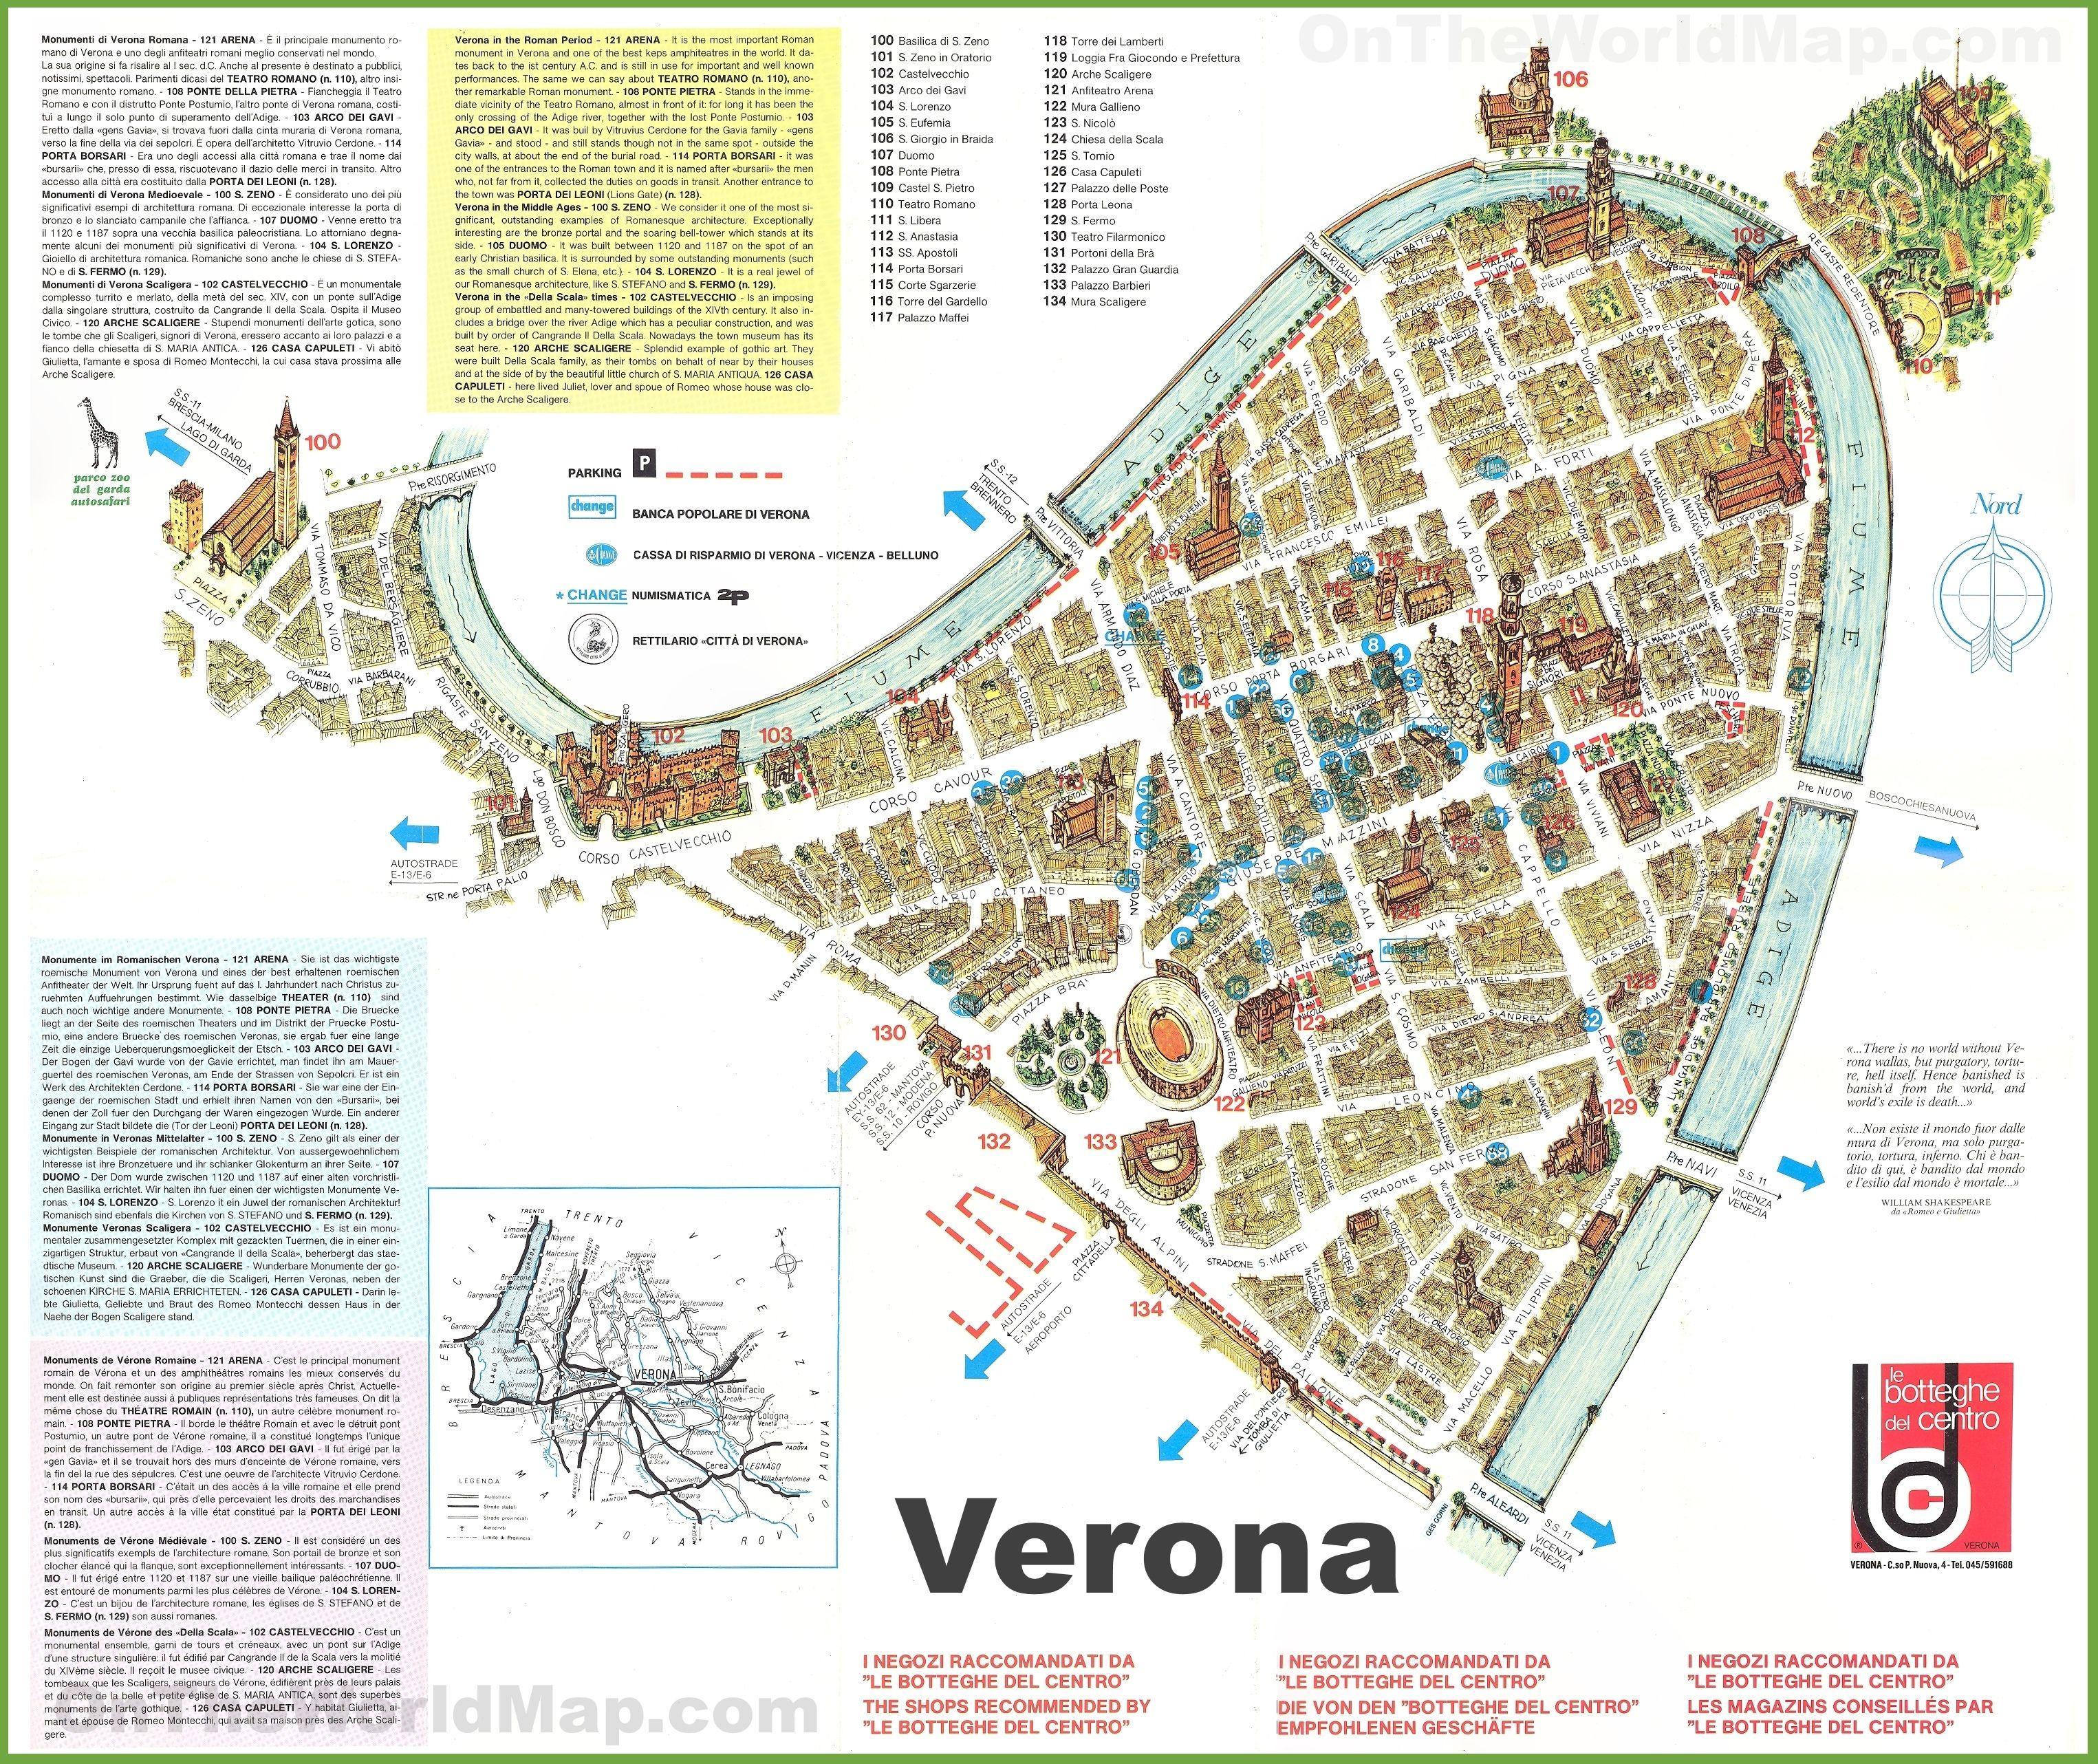 Pin by Tony Santos on Places in the world Pinterest Verona